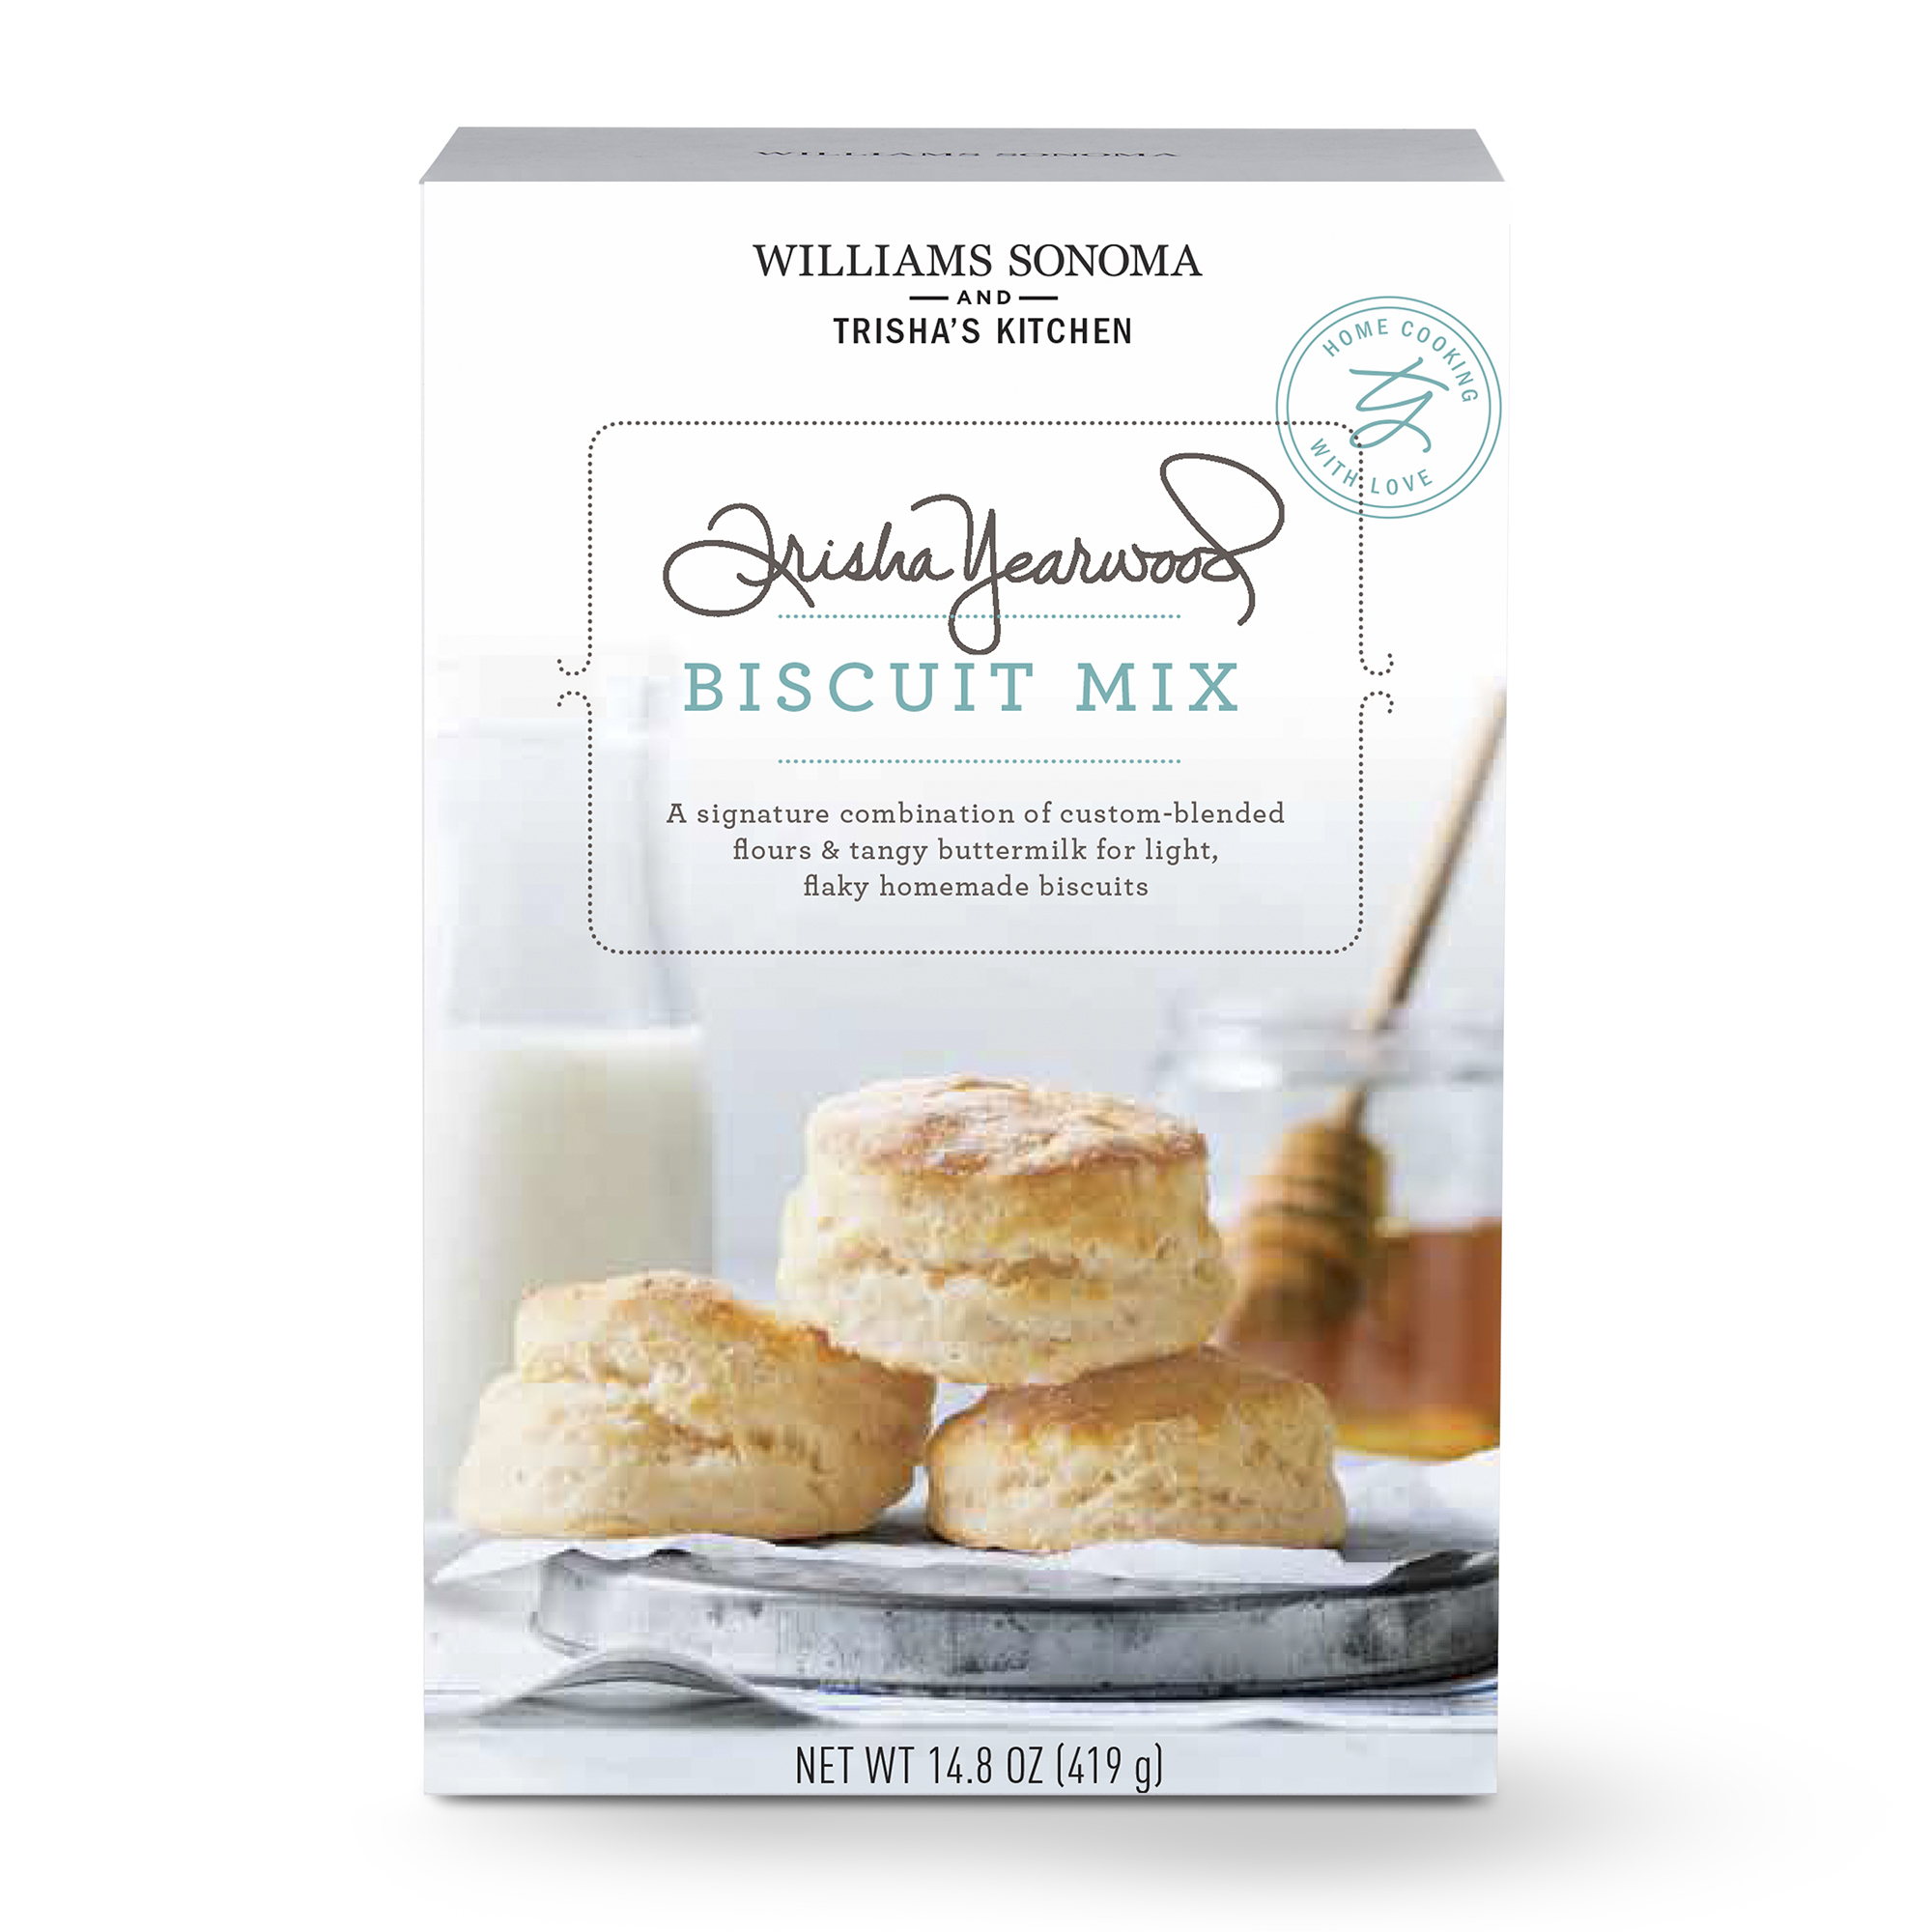 Williams Sonoma and Trisha's Kitchen Biscuit Mix (Photo: Business Wire)